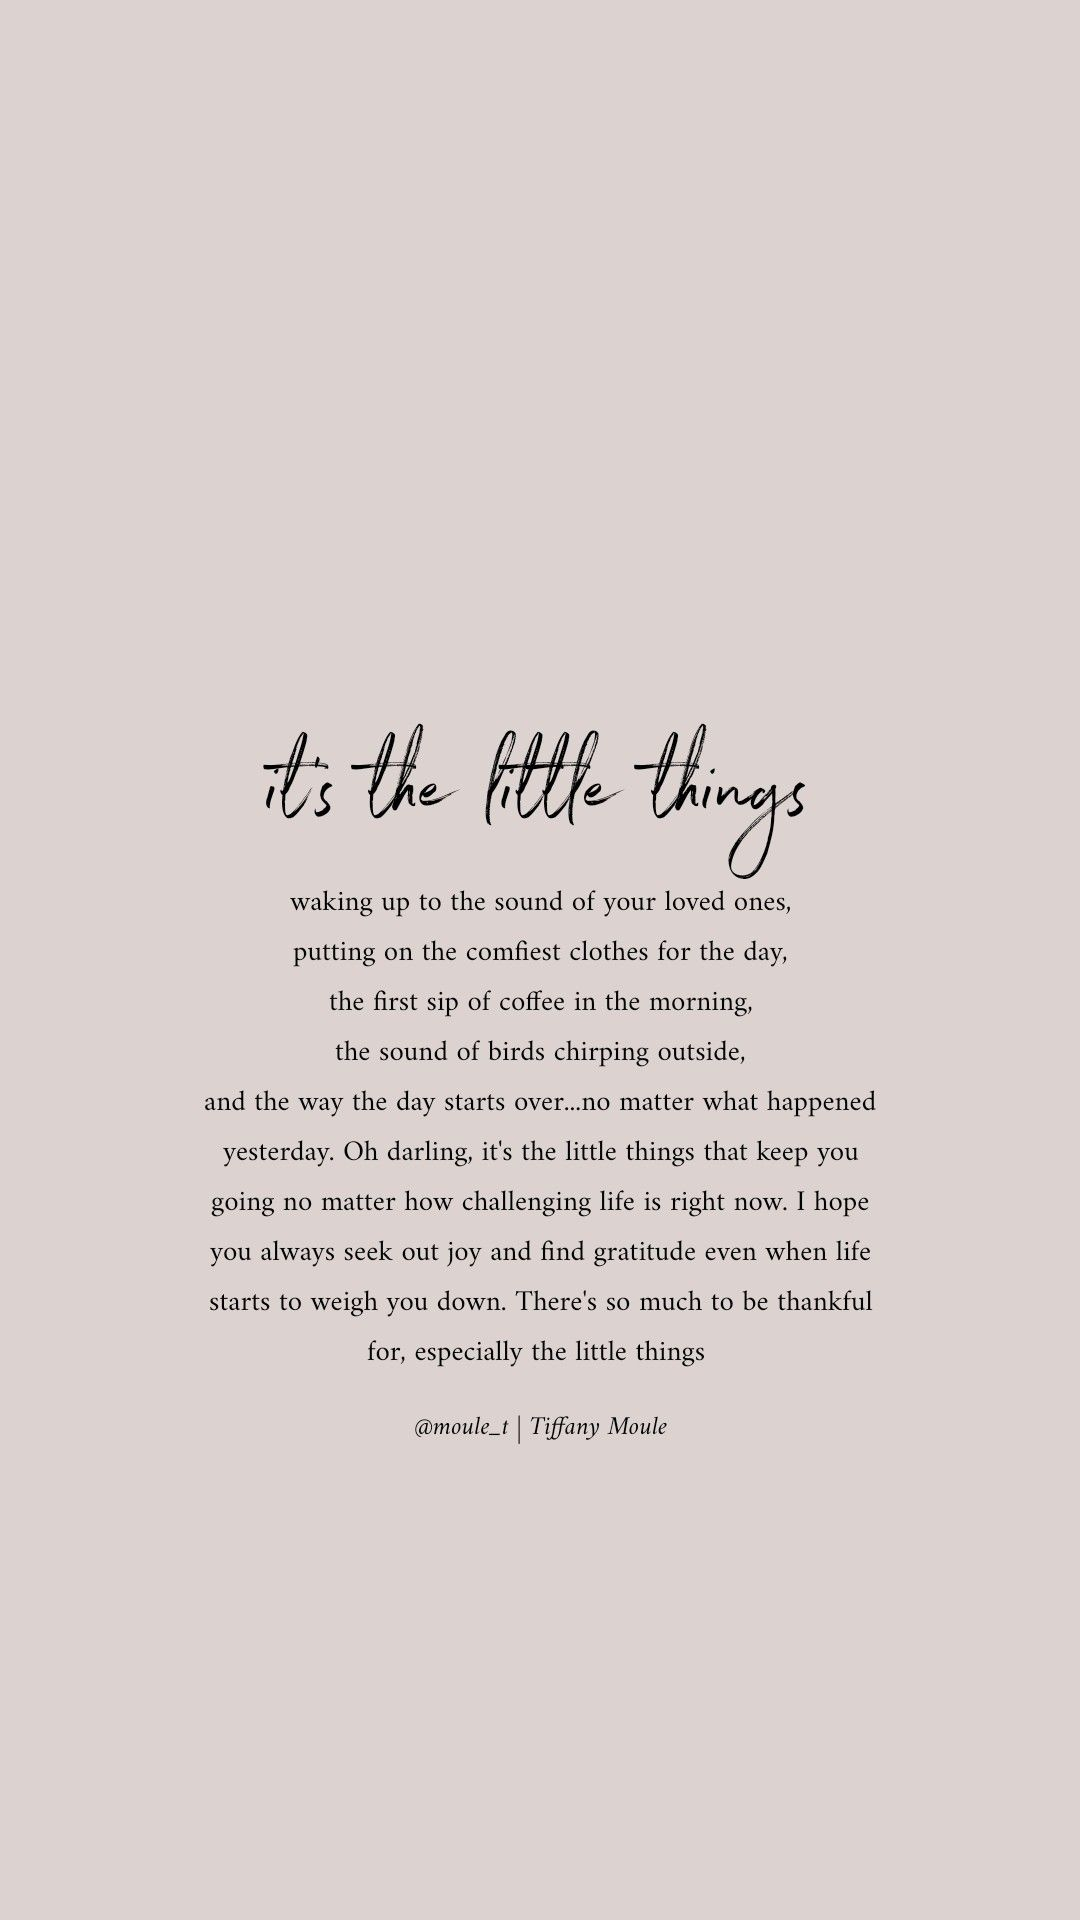 It's the little things in life that give the most #gratitude #quote #grateful #mindful